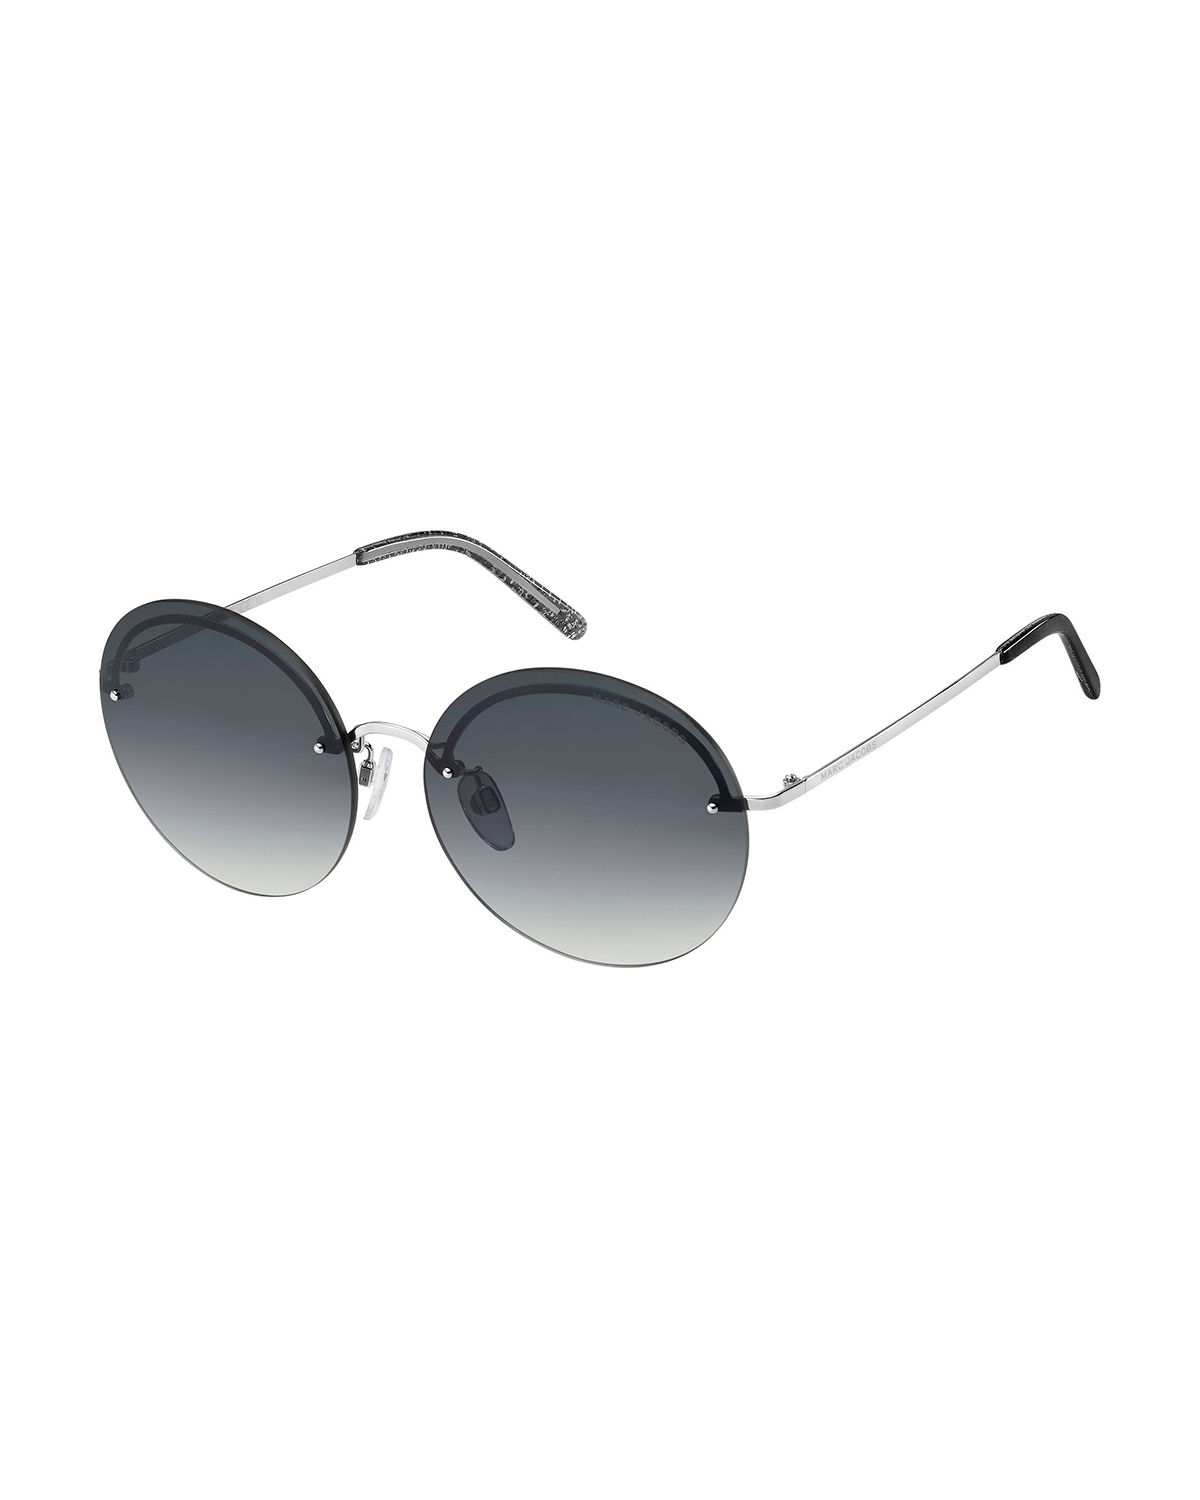 Marc Jacobs Sunglasses RIMLESS ROUND STAINLESS STEEL SUNGLASSES